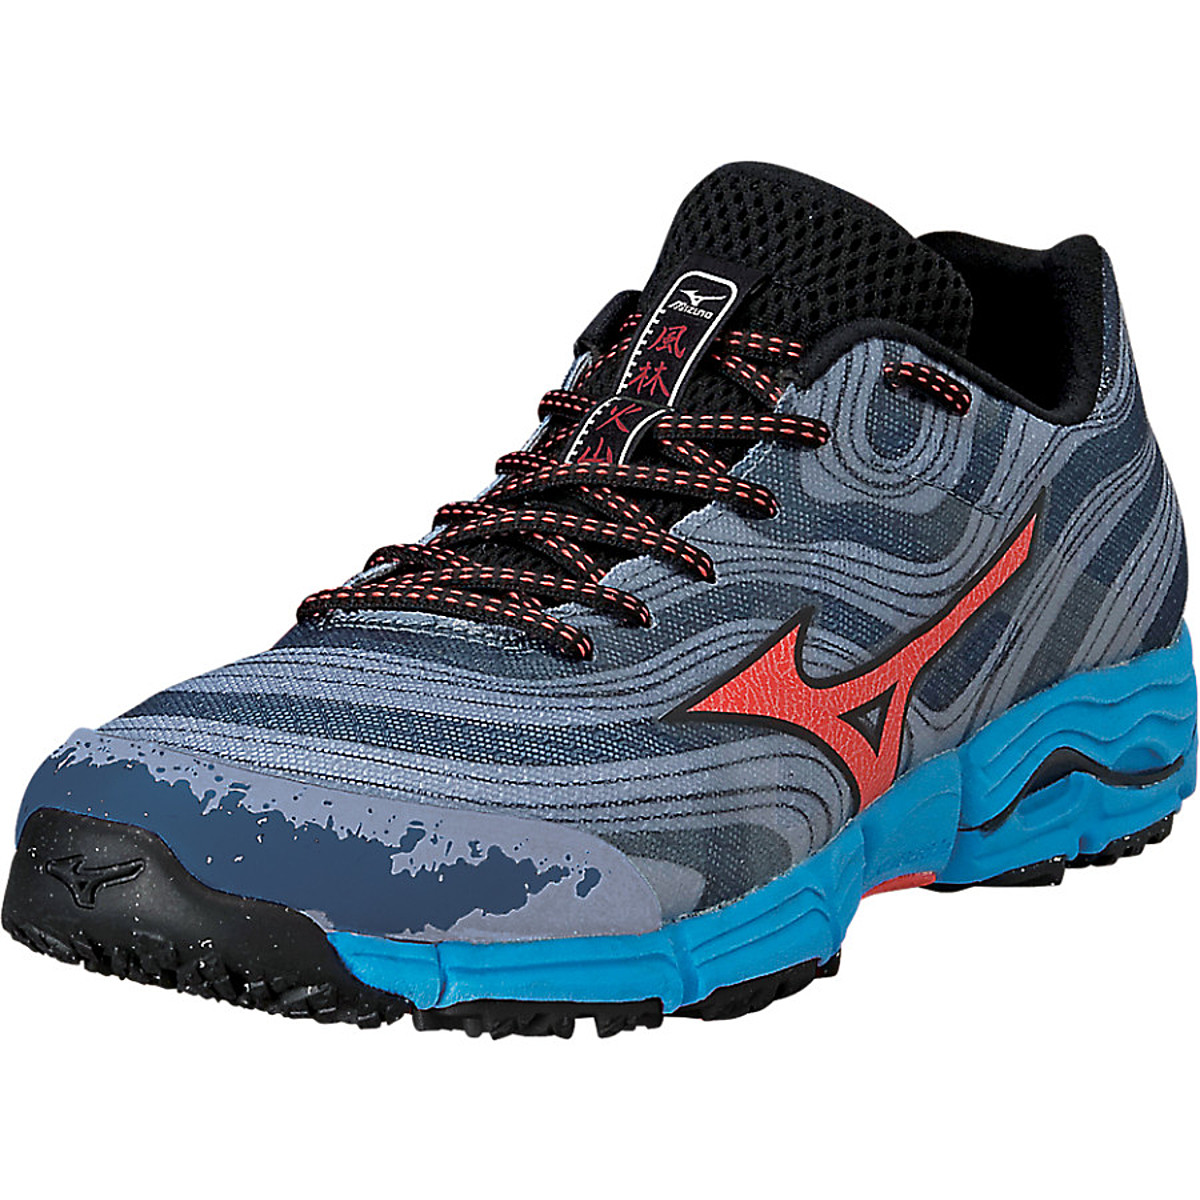 photo of a Mizuno trail running shoe